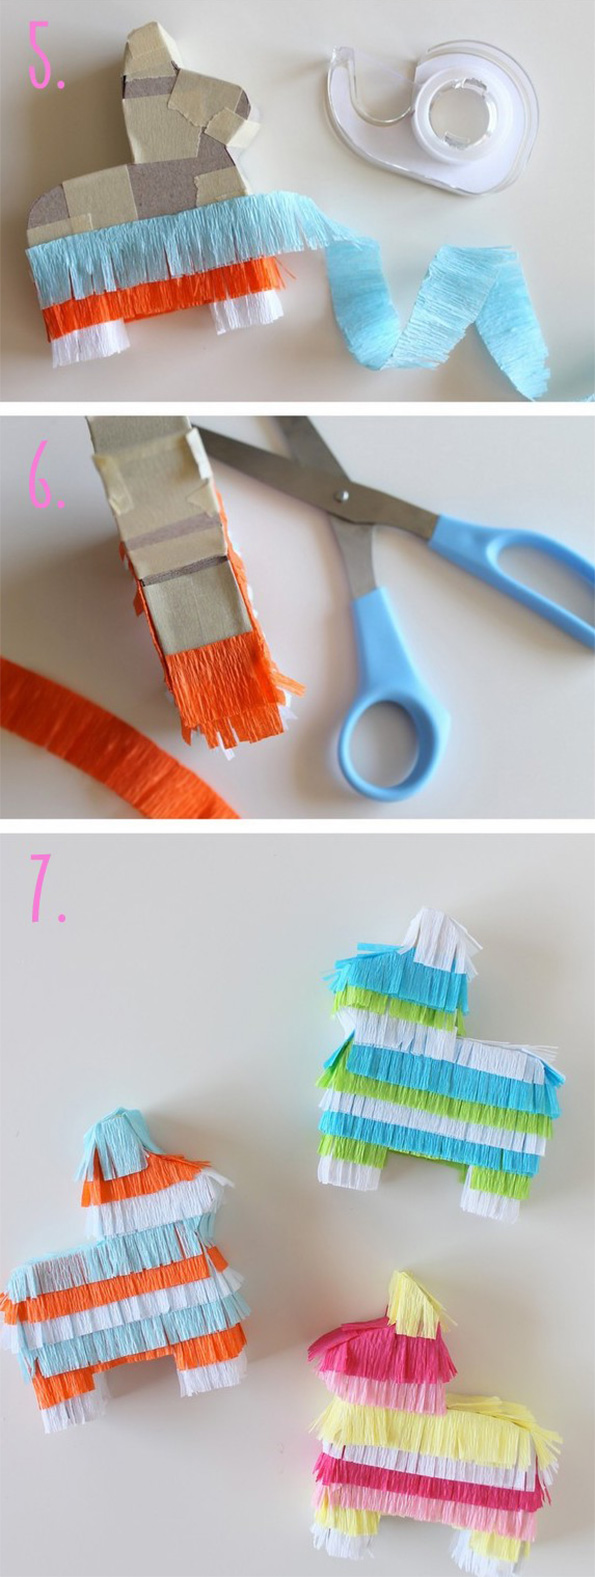 Courtesy of Evite - DIY Pinata Place Cards Tutorial